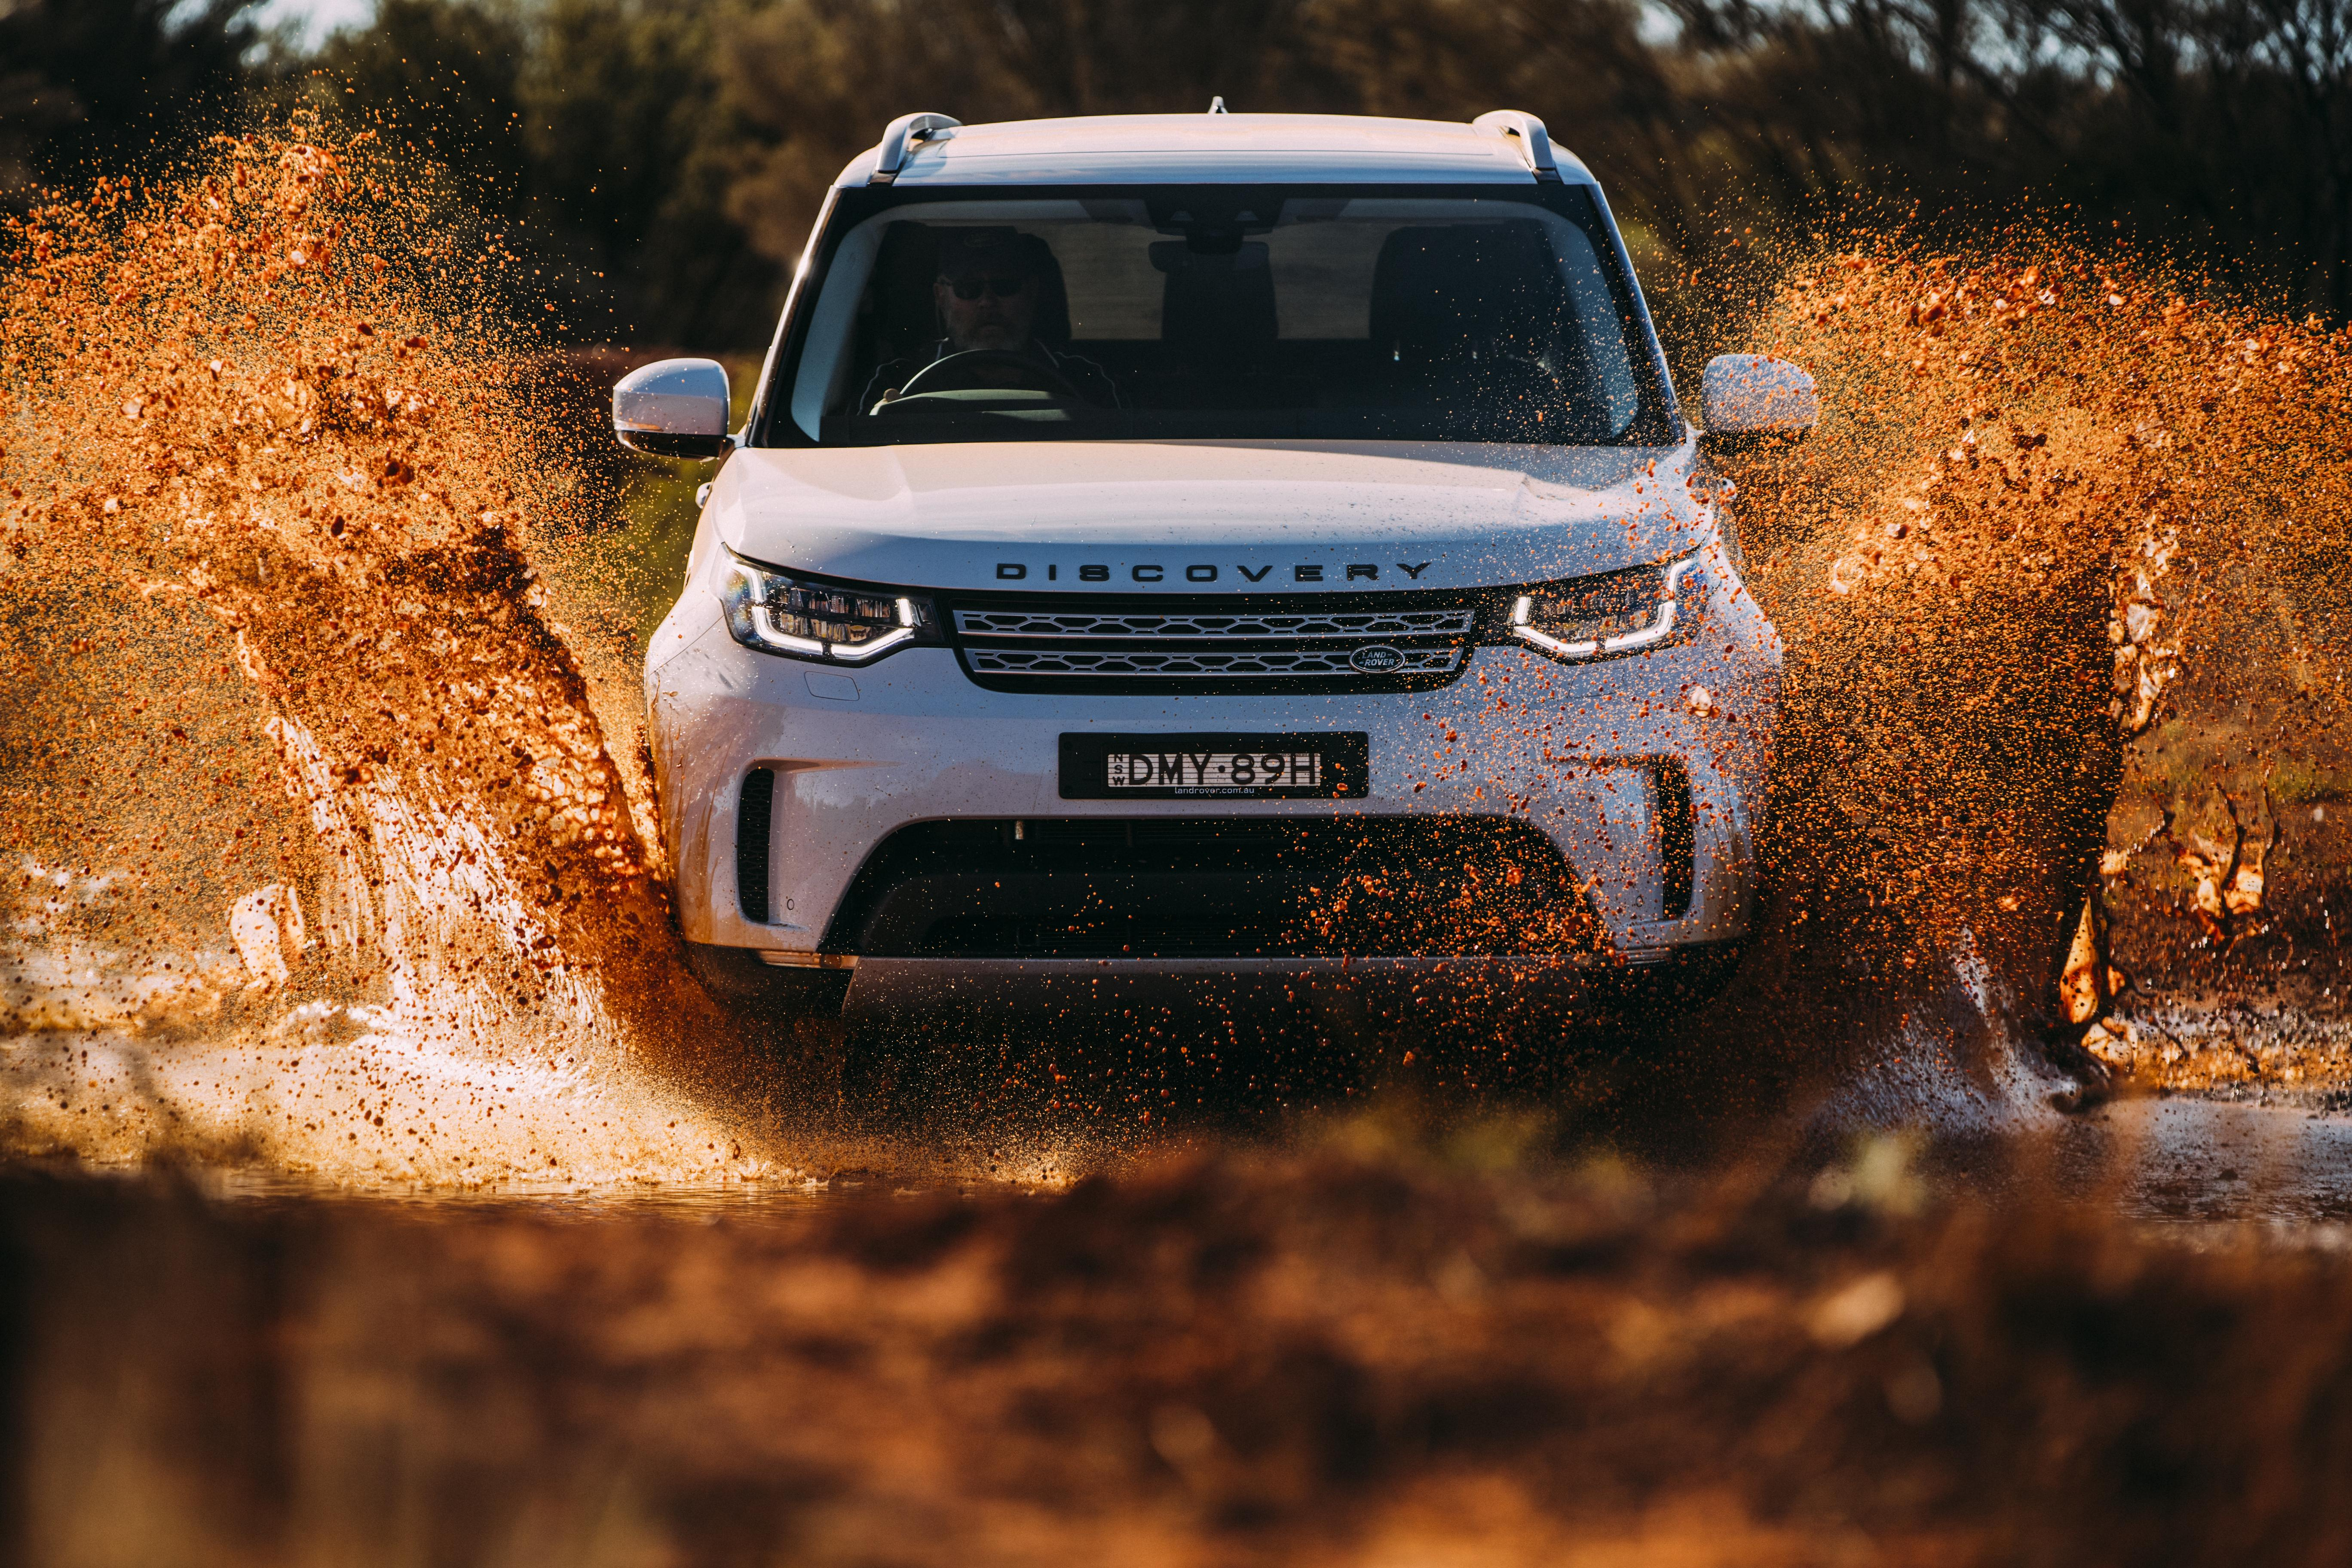 2019-21 Land Rover Discovery recalled